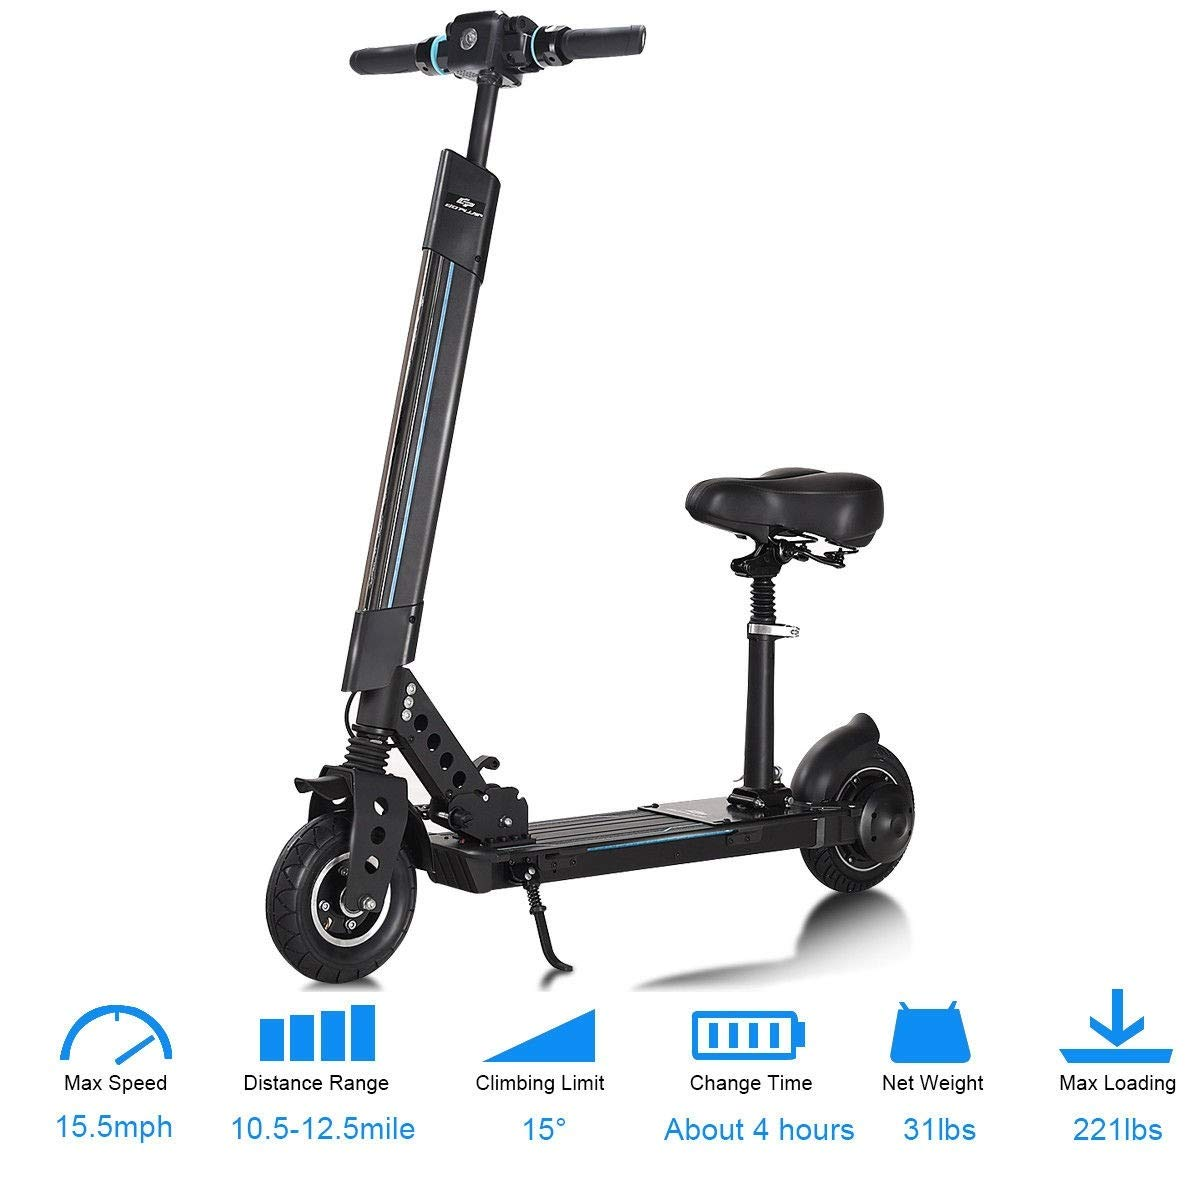 S AFSTAR Electric Scooter Mobility Foldable E-Bike Bicycle Kick Scooter with Removable Seat, LED Light, Bluetooth Music Play Function for Adults n Kids (Black)